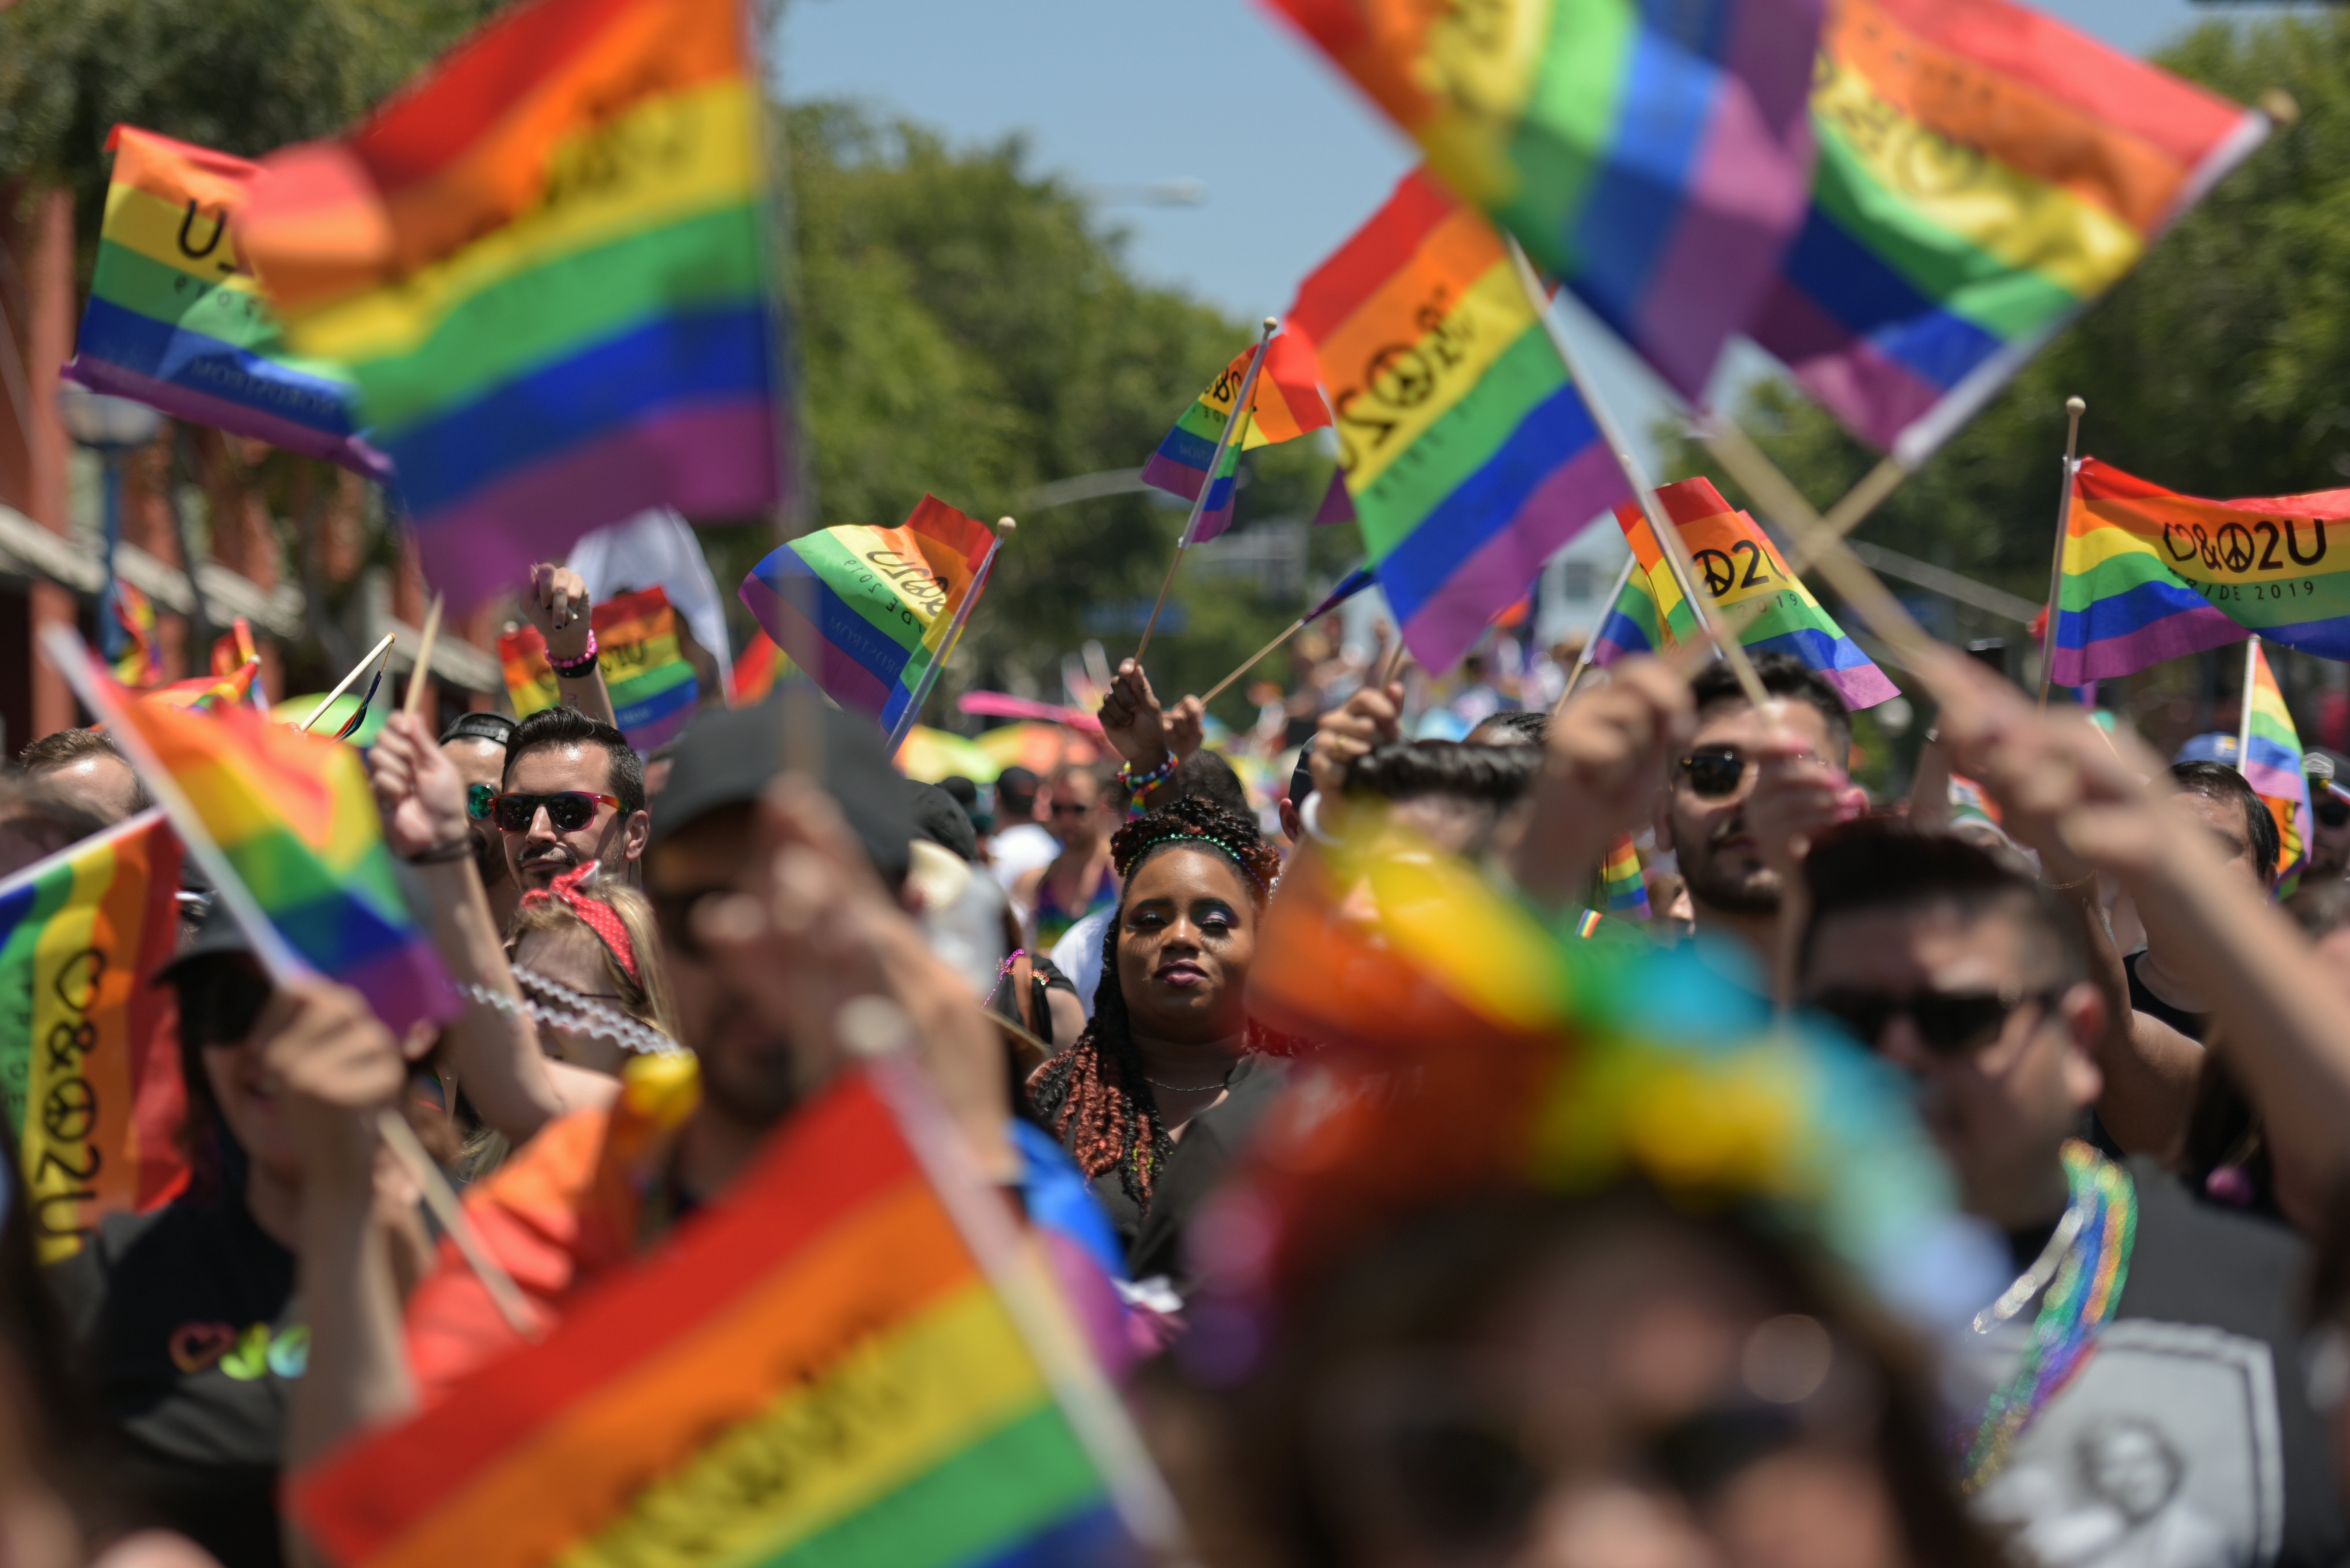 People participate in the annual LA Pride Parade in West Hollywood, California, on June 9, 2019. - LA Pride began on June 28, 1970, exactly one year after the historic Stonewall Rebellion in New York City, 50 years ago. (Photo by Agustin PAULLIER / AFP) (Photo credit should read AGUSTIN PAULLIER/AFP/Getty Images)